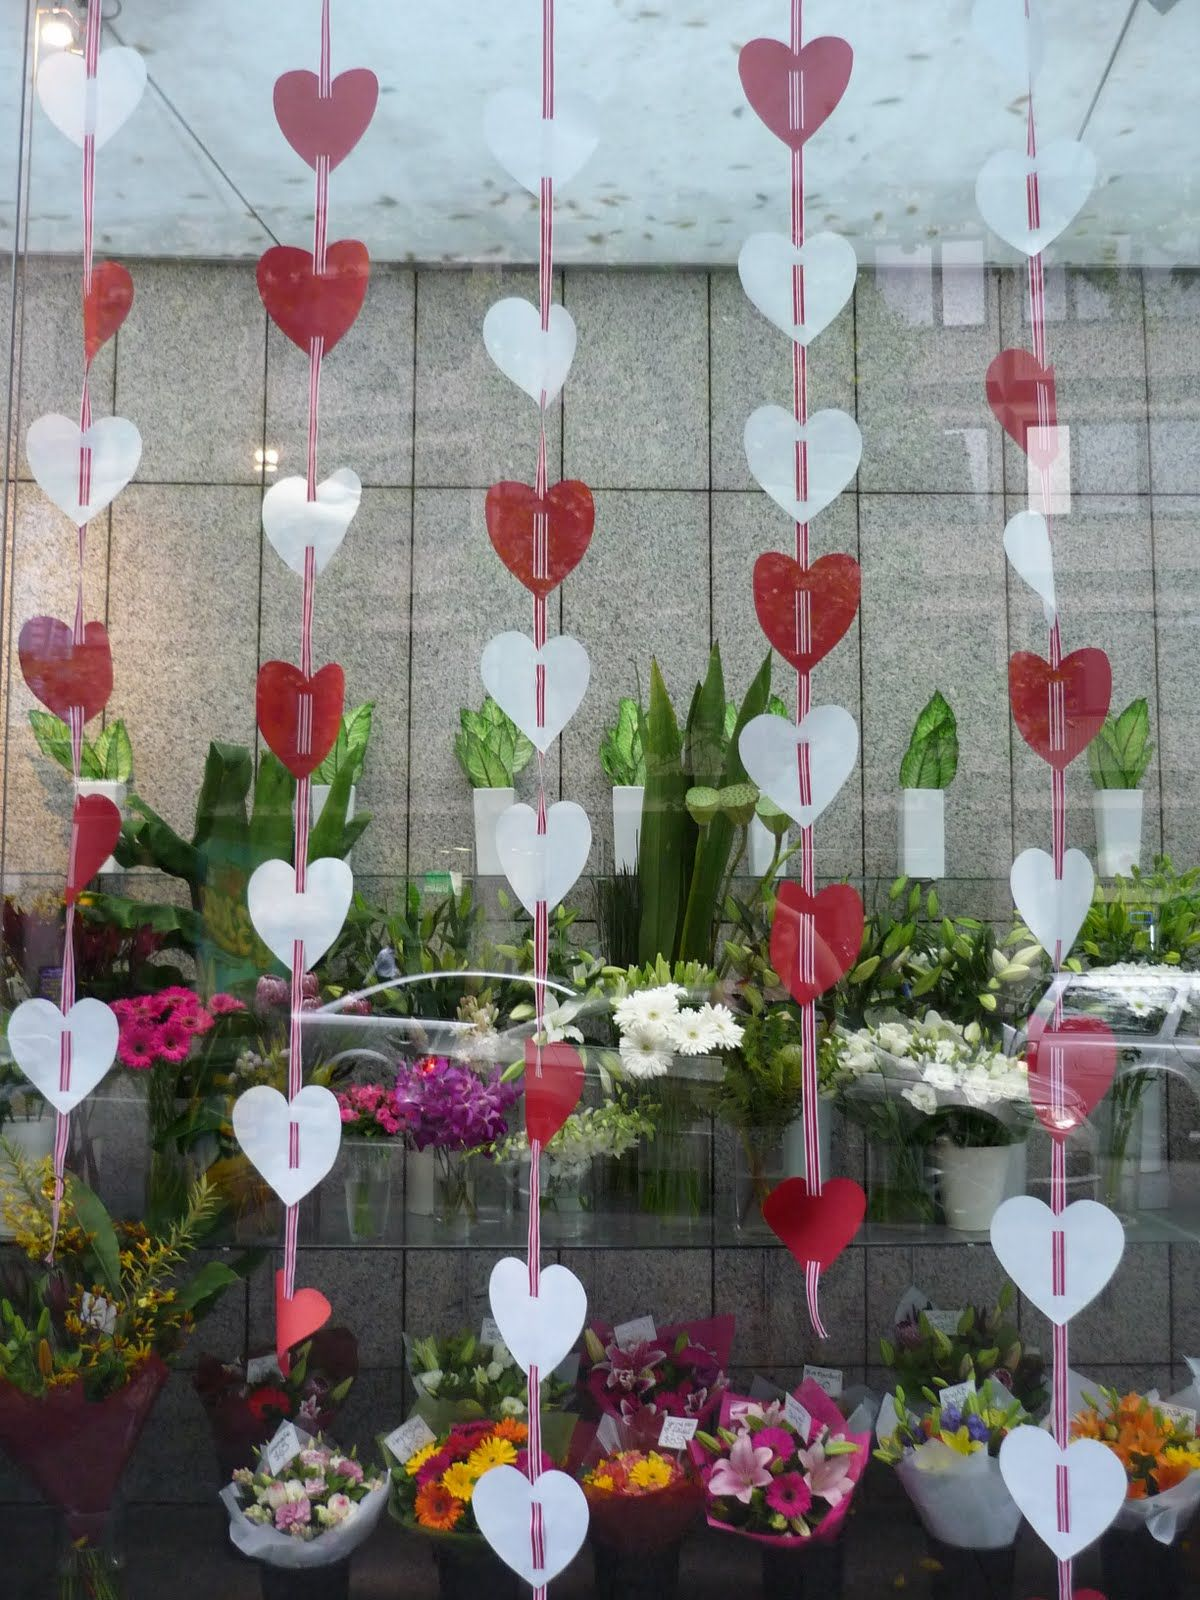 flower shop window displays for valentines day